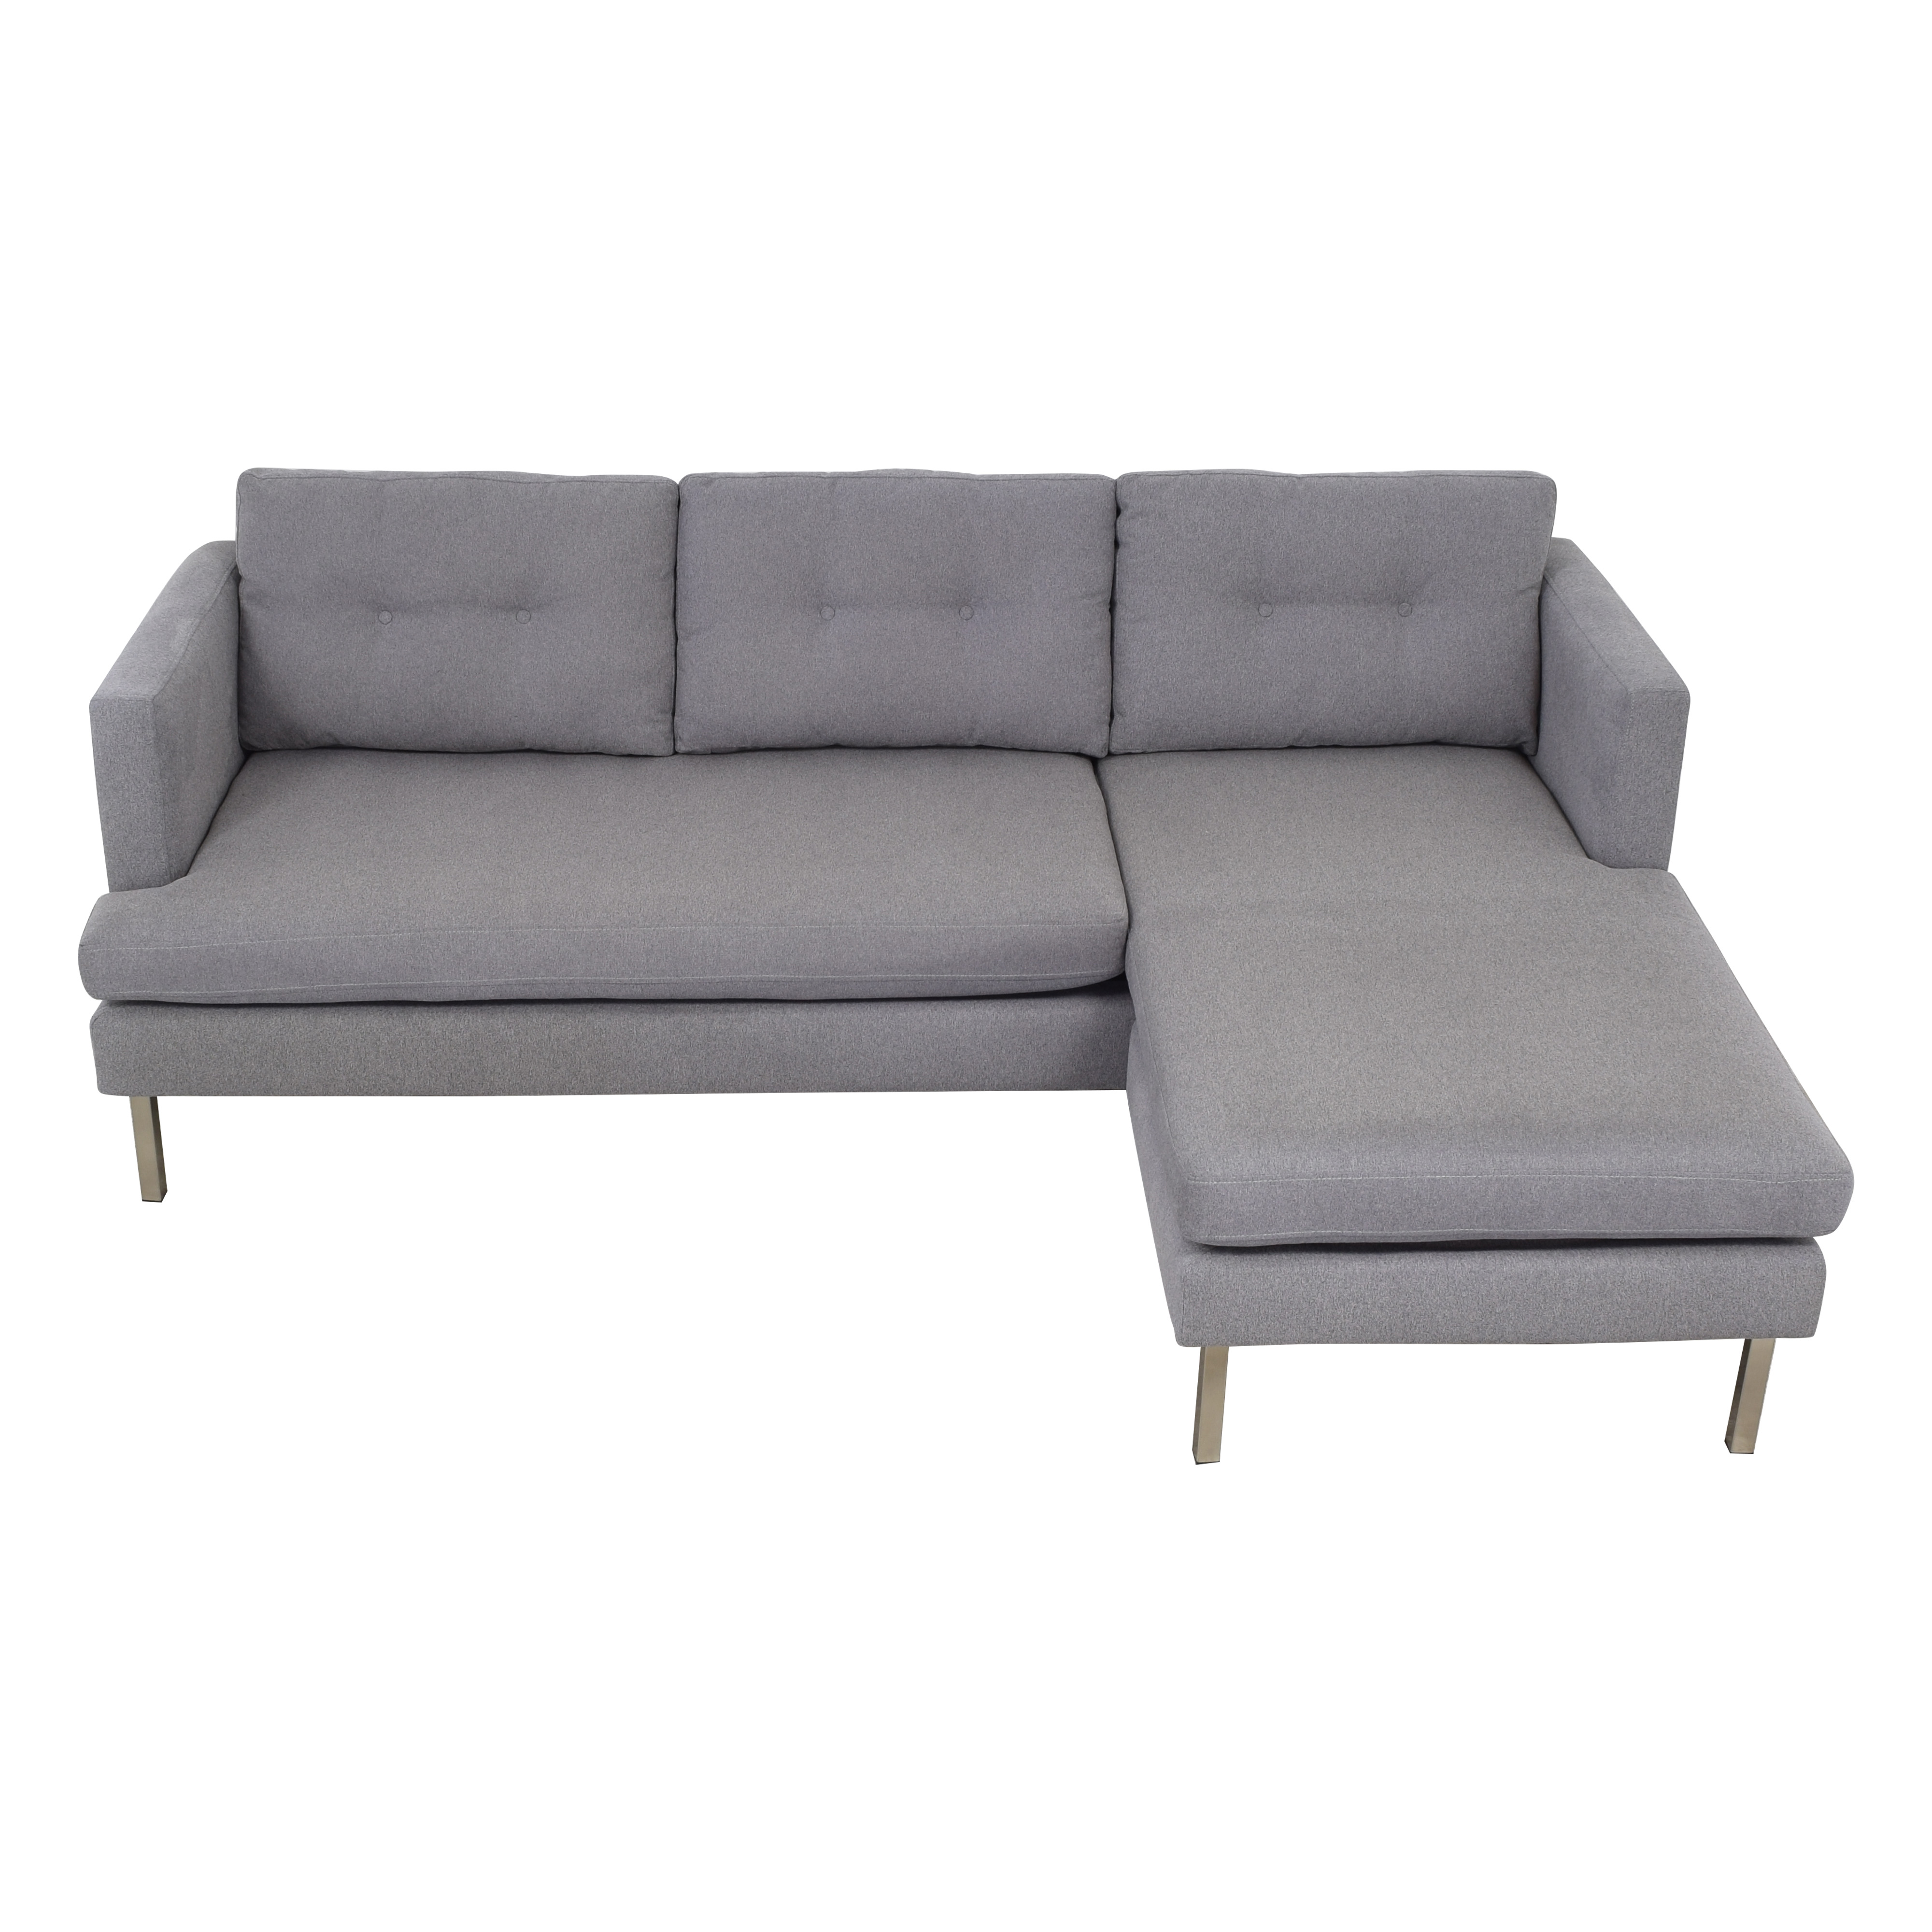 West Elm West Elm Jackson Chaise Sectional Sofa second hand